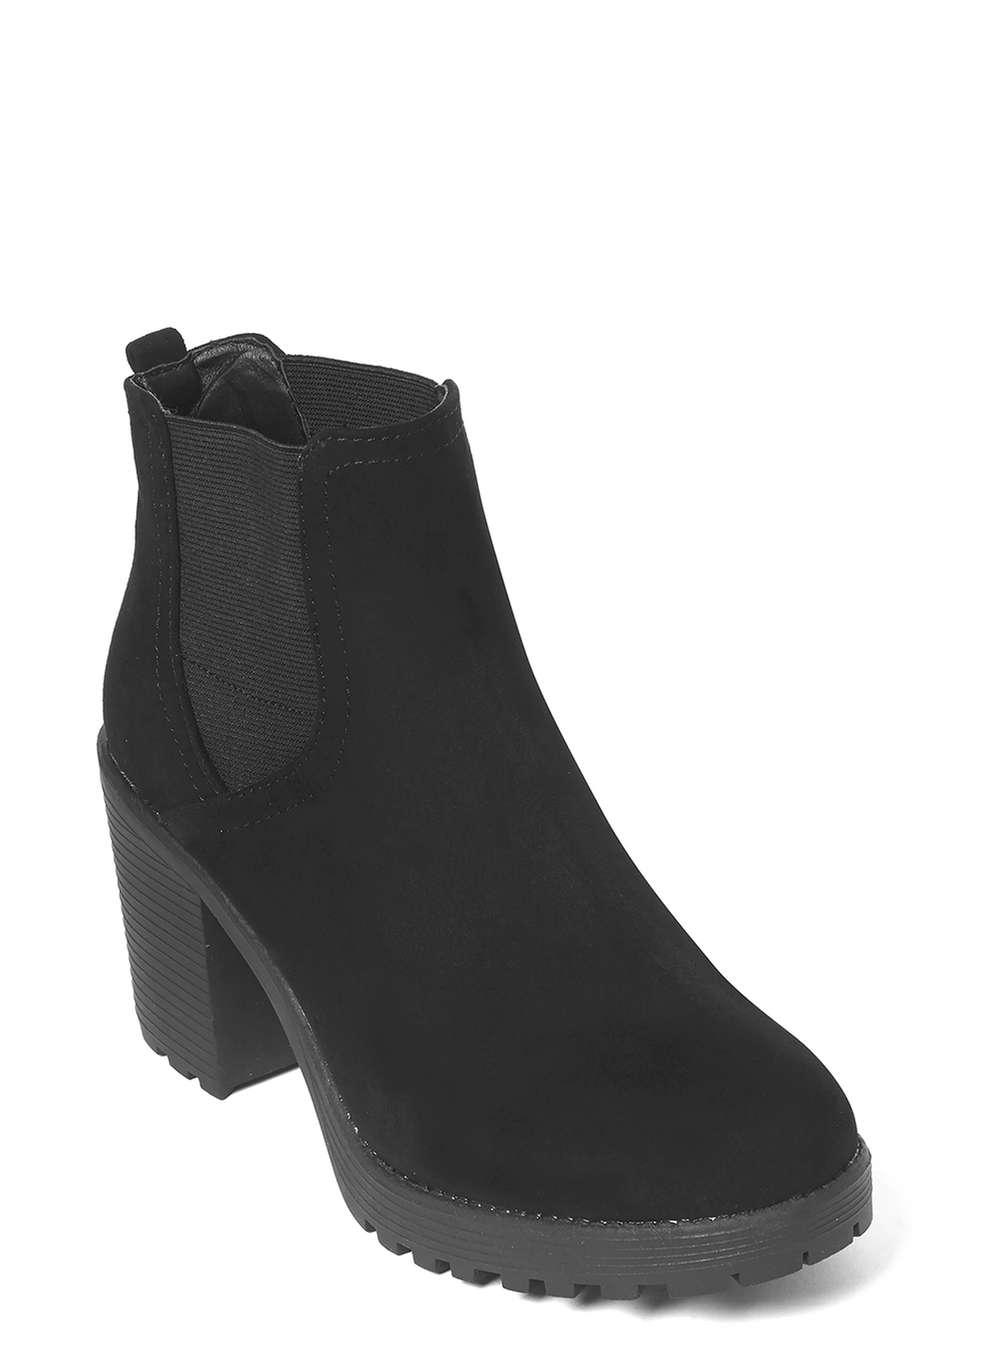 Dorothy Perkins Black 'minny' Chunky Ankle Boots